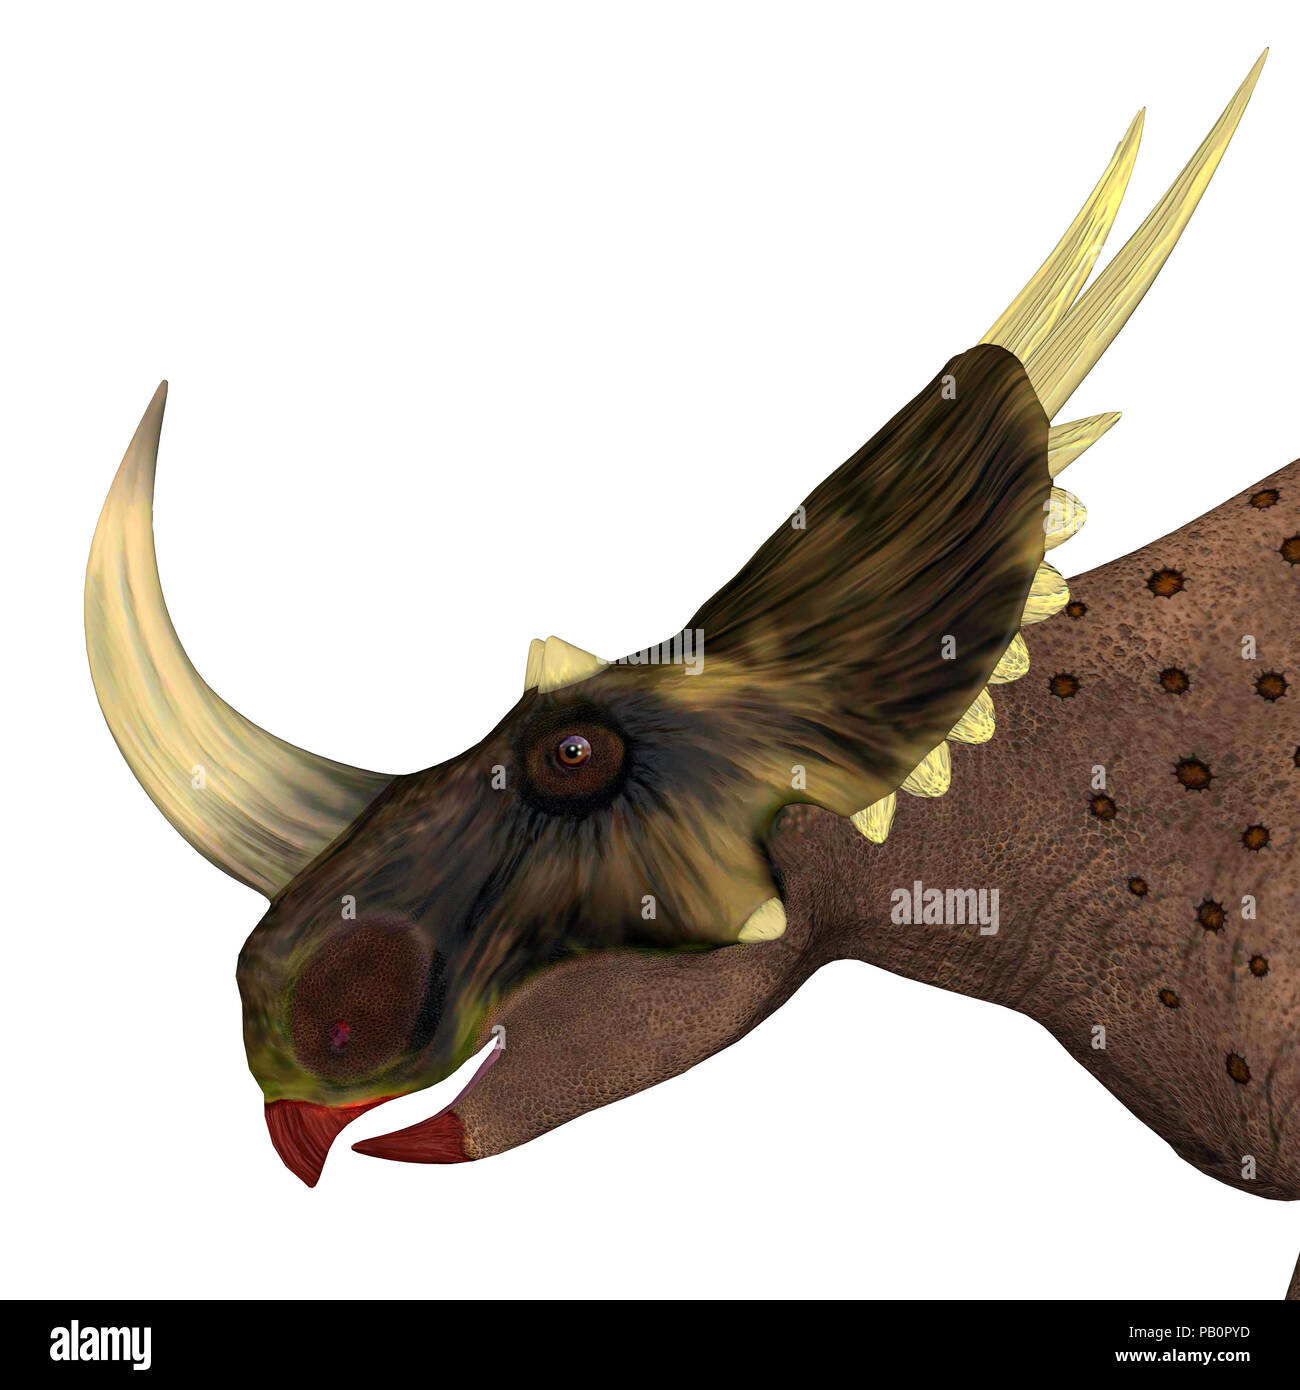 Brown Rubeosaurus Dinosaur Head - Rubeosaurus was a herbivorous Ceratopsian dinosaur that lived in North America during the Cretaceous Period. - Stock Image